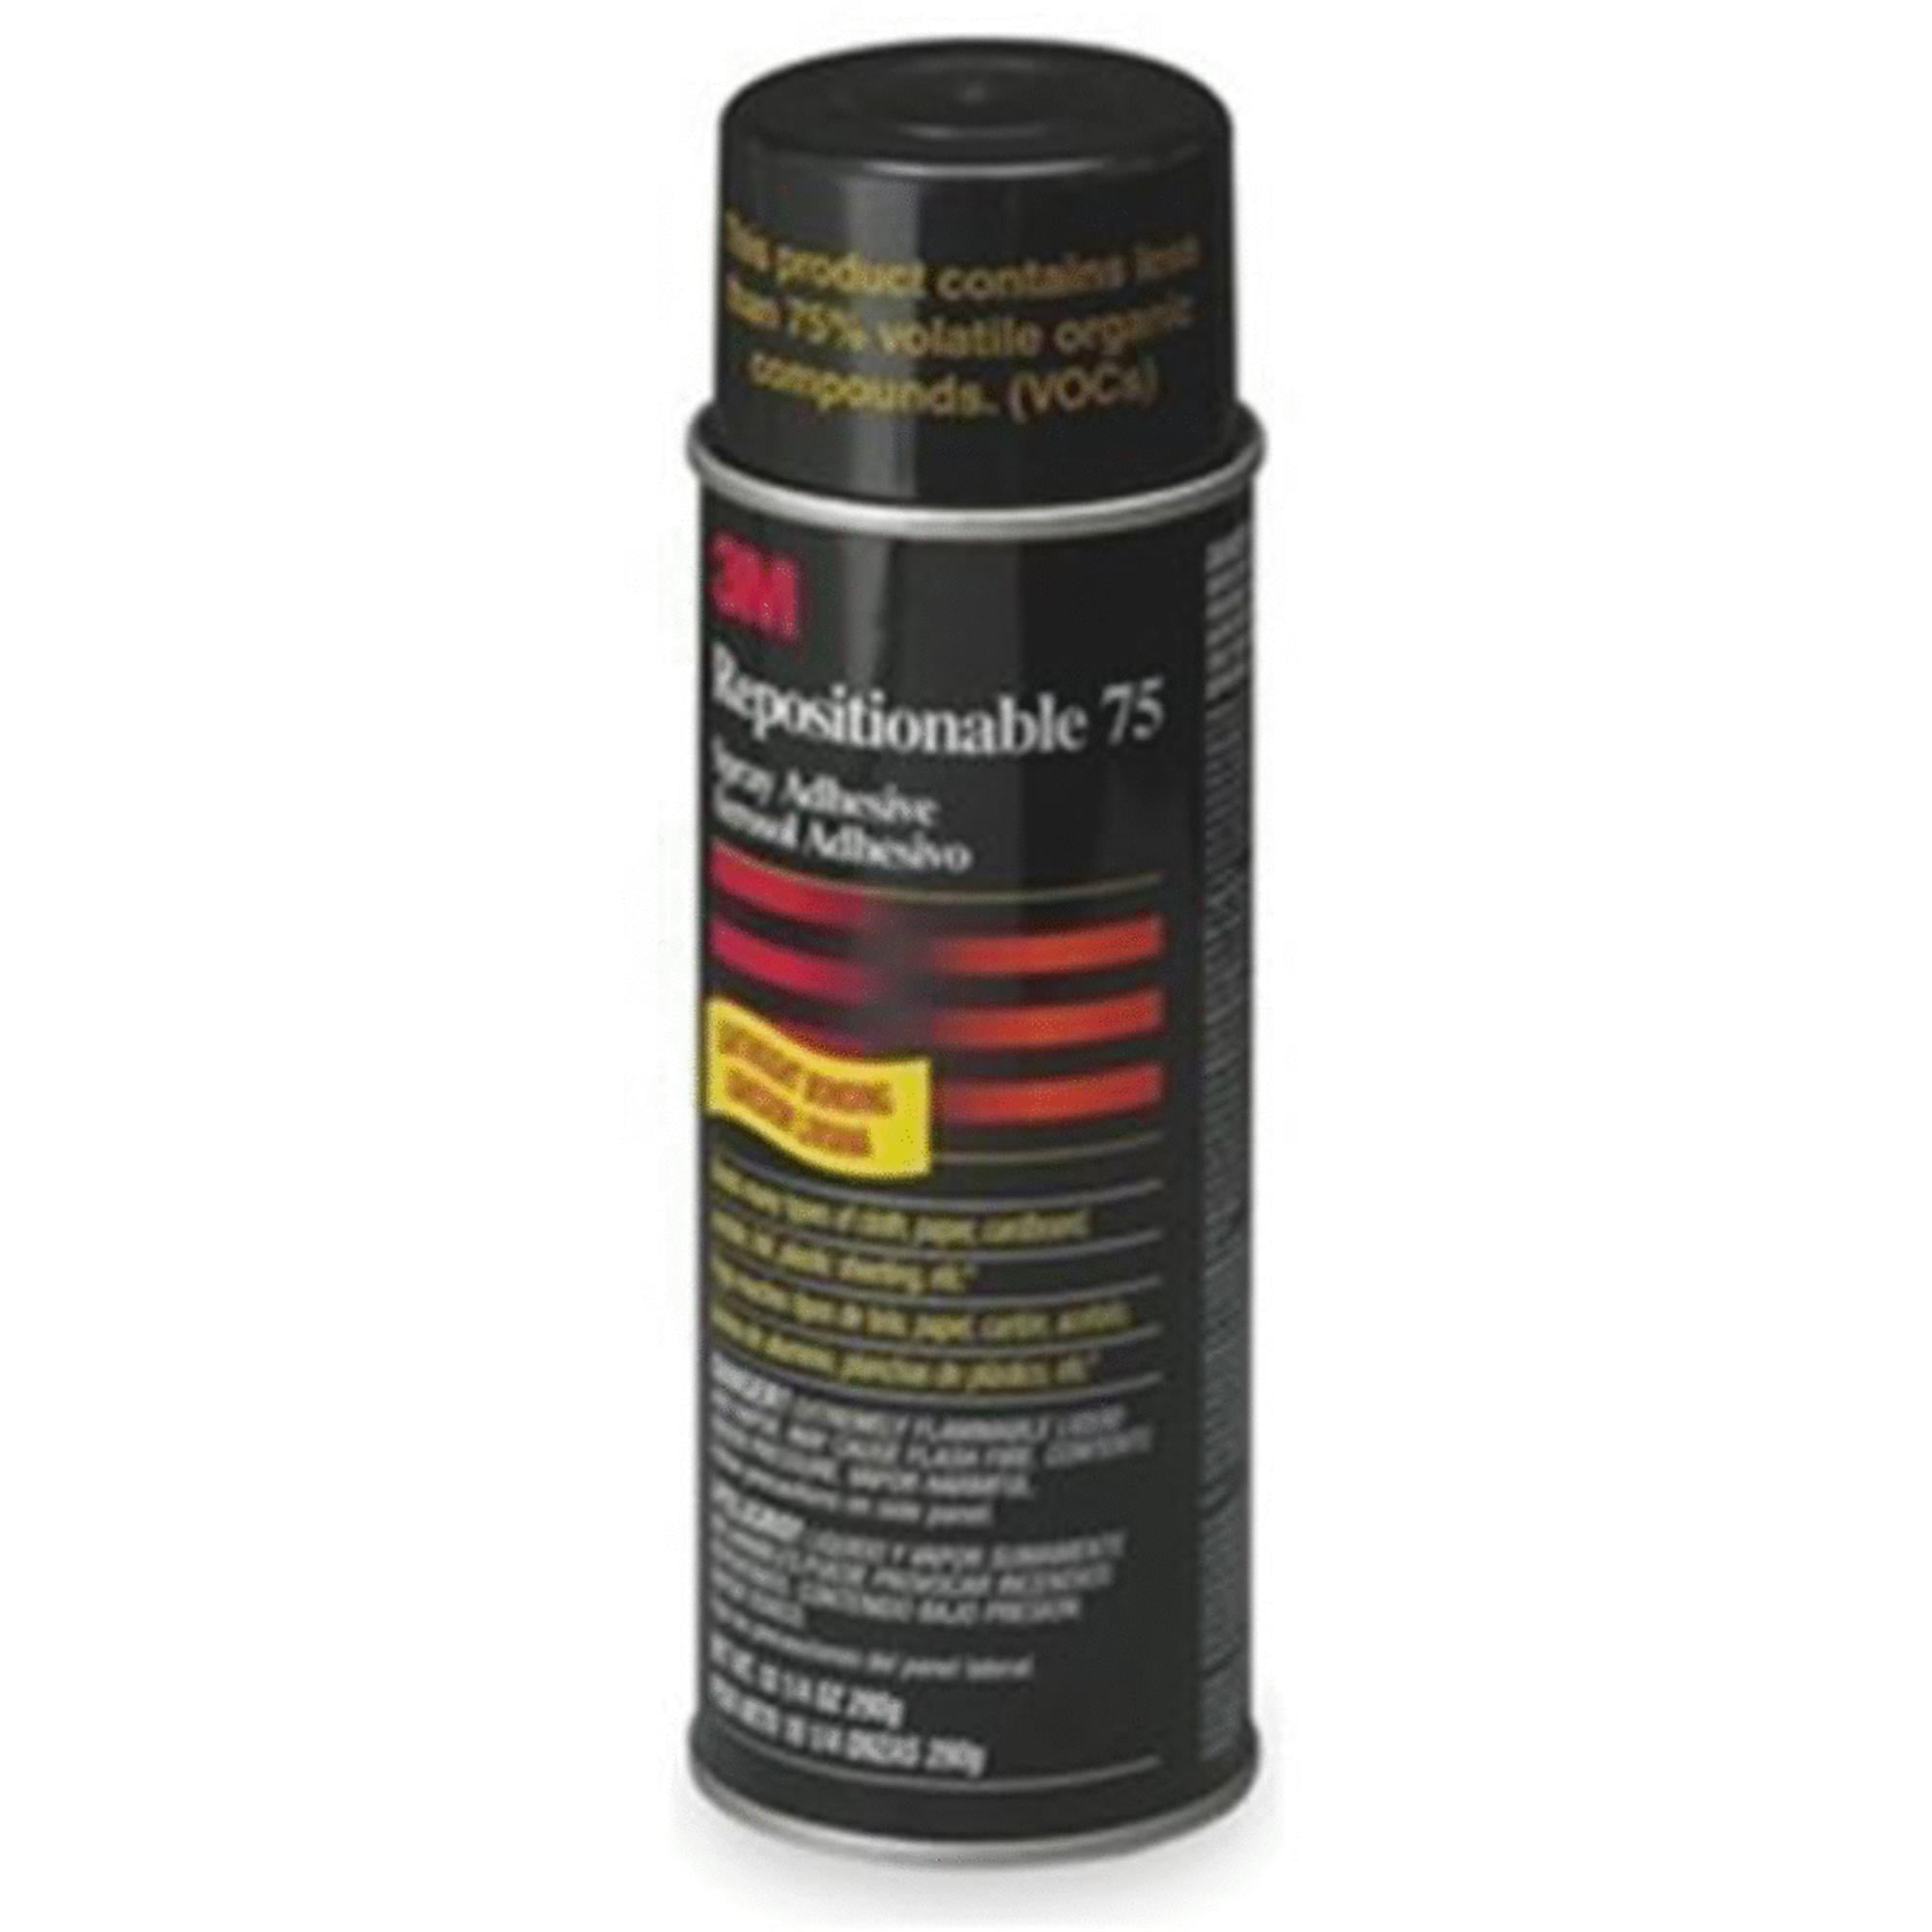 3M Repositionable 75 Spray Adhesive by 3M